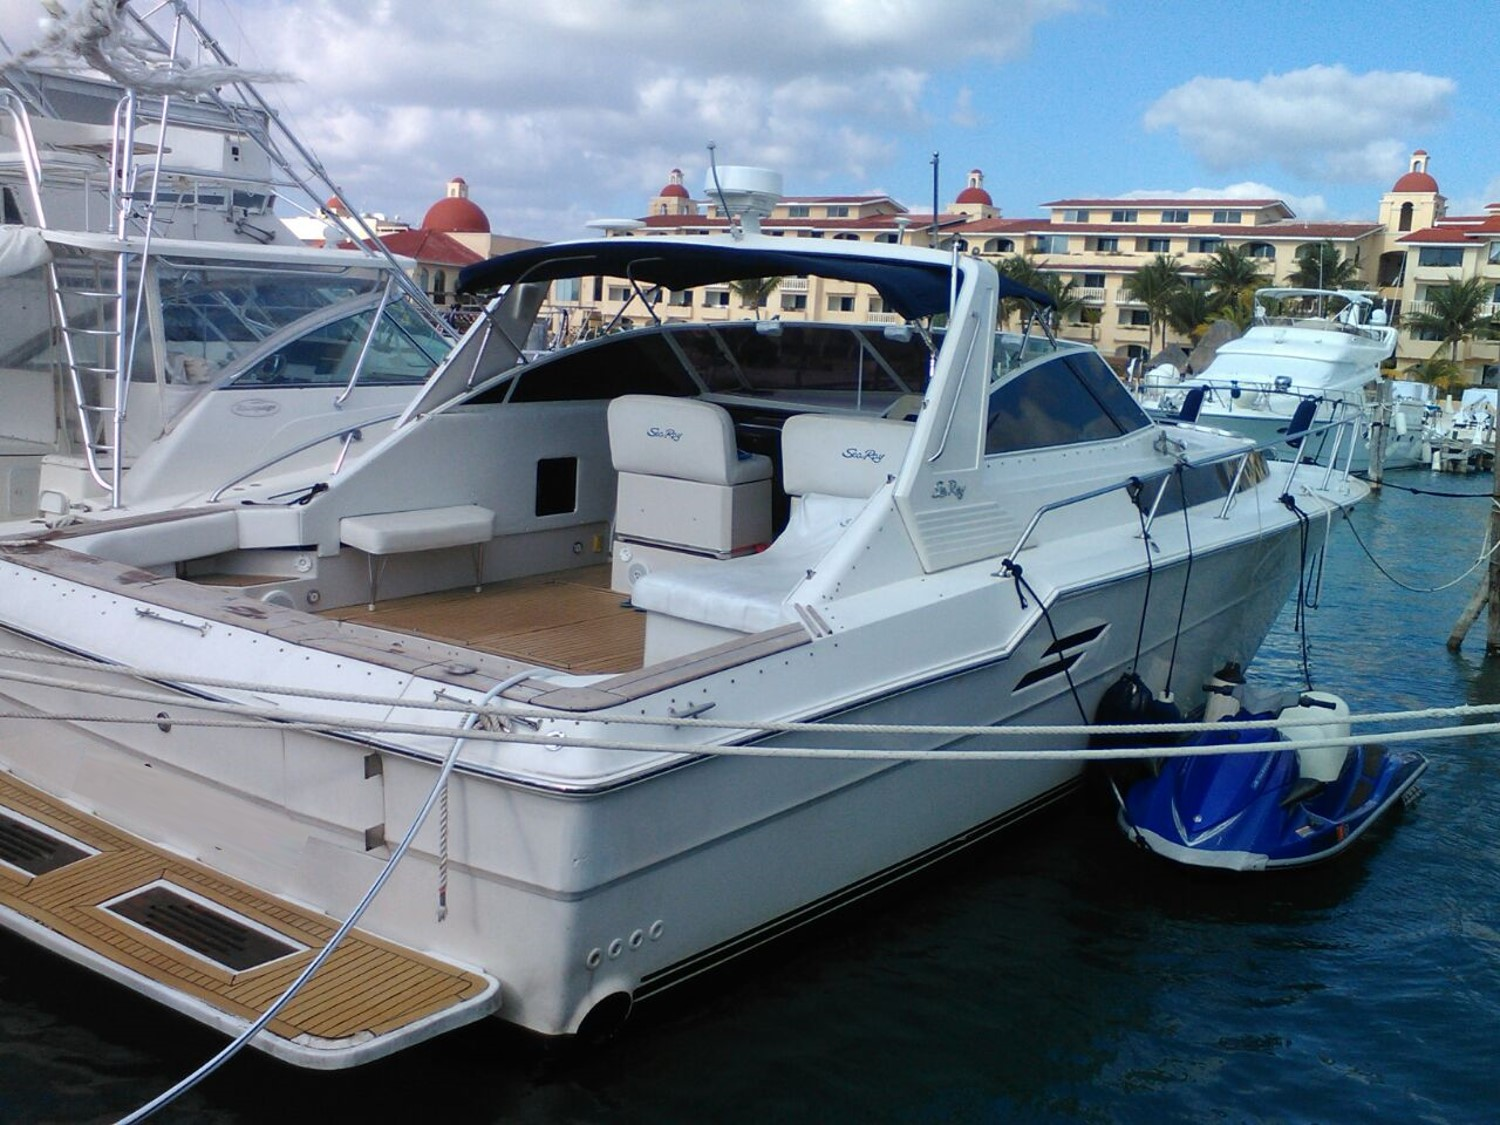 Yacht Charter in Cancun private Luxury yacht charter in cancun sport fishing isla mujeres puerto morelos puerto aventuras cozumel fishing boat fishing charter fishing trip Caribbean fishing charte in cancun with flybridege bachelorette party long charter in the caribbean holbox charter snorkel trip luxury Azimut 68s feet with flybridgeYacht Rentals in Cancun private Luxury yacht charter in cancun sport fishing isla mujeres puerto morelos puerto aventuras cozumel fishing boat fishing charter fishing trip Caribbean fishing charte in cancun with flybridege bachelorette party long charter in the caribbean holbox charter snorkel trip luxury Sailboat for rent in Cancun Sea Ray 46 Feet